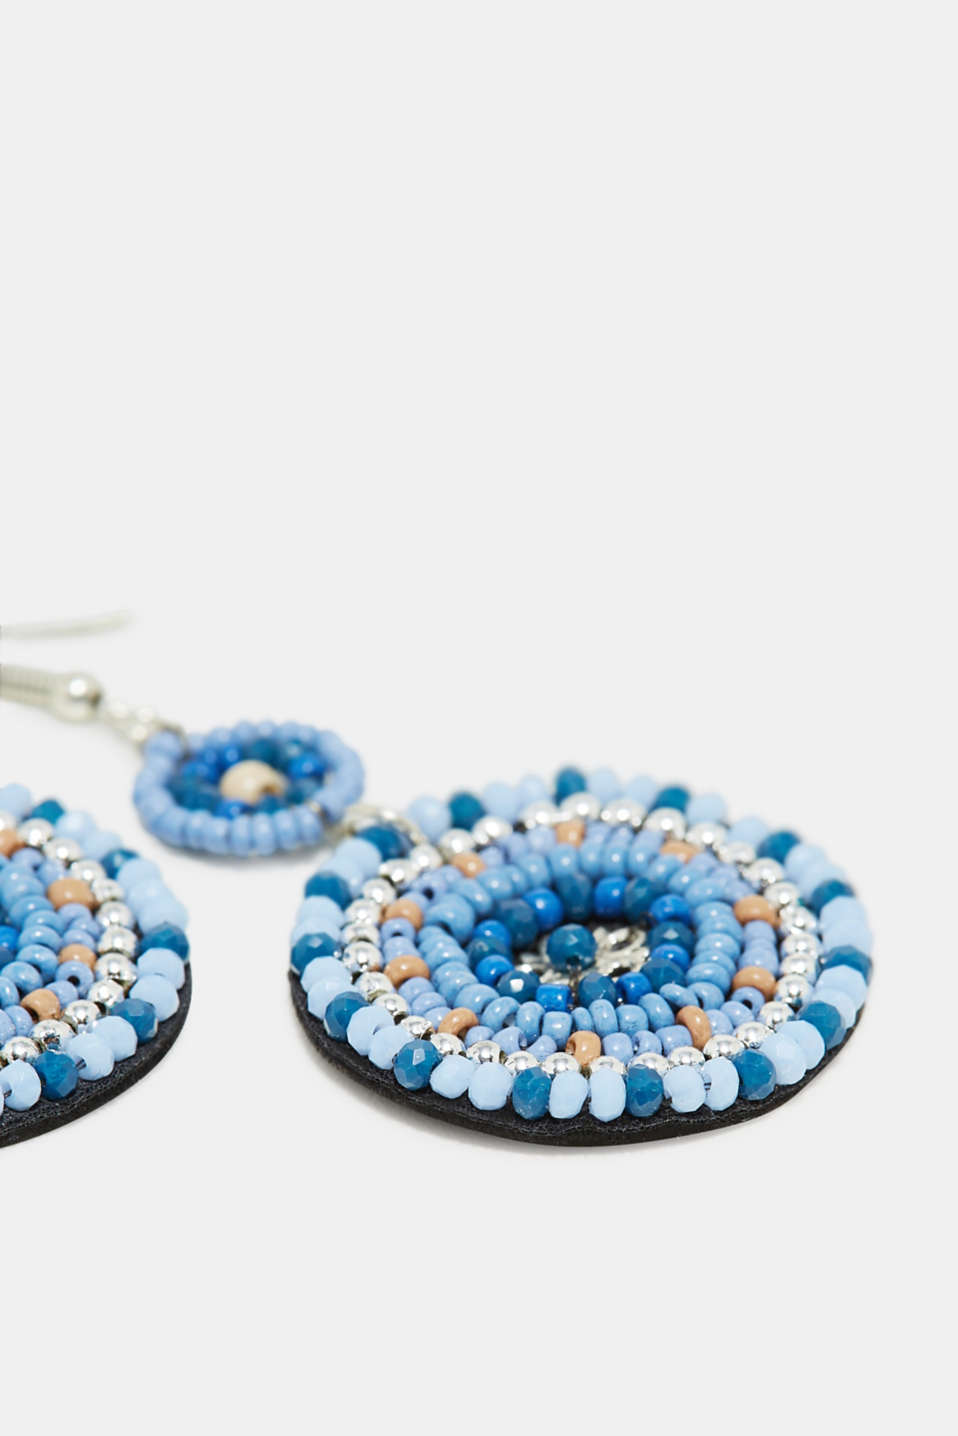 Earrings with bead embellishments